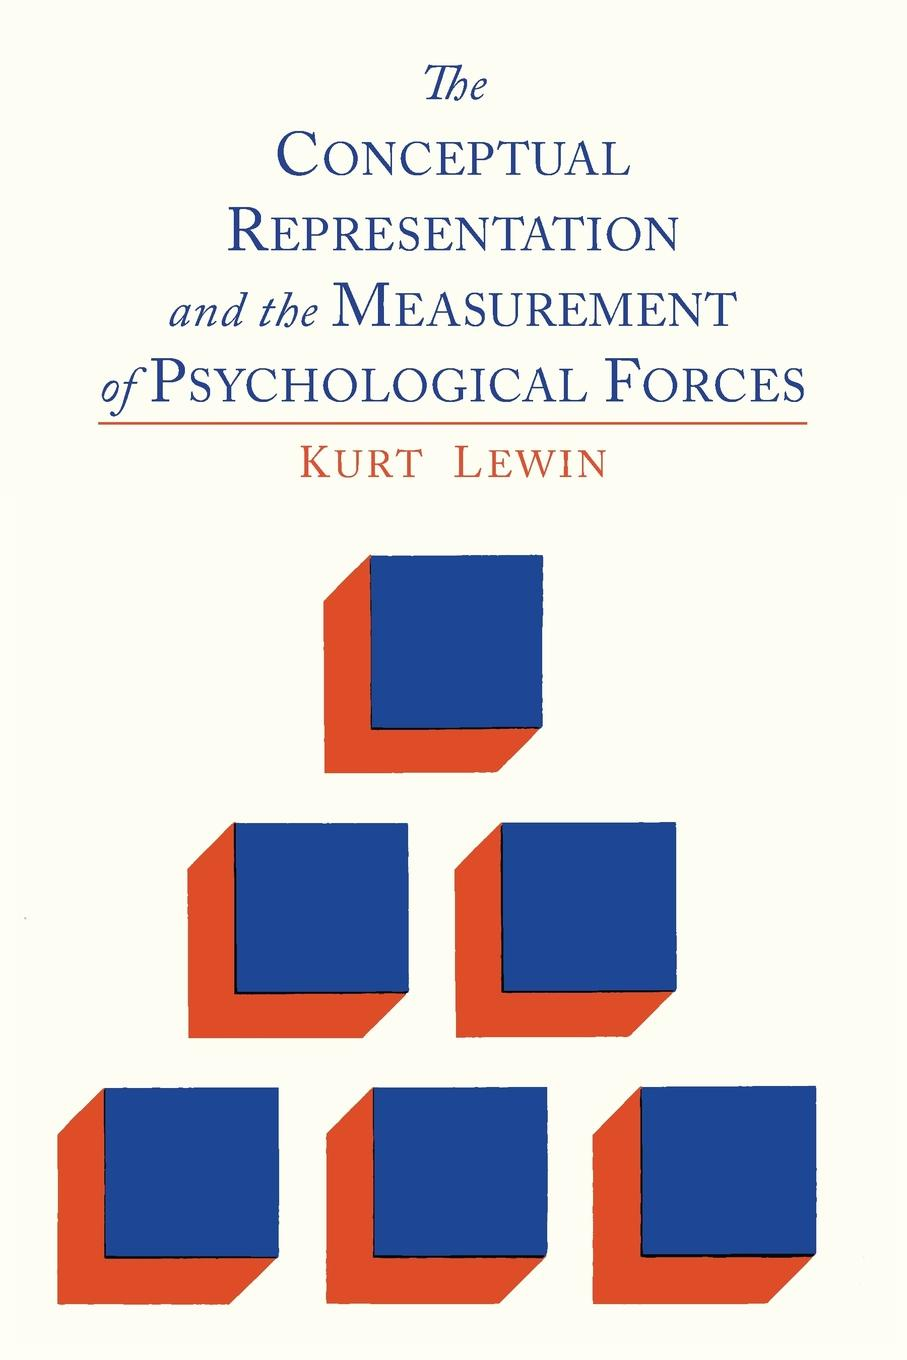 Kurt Lewin The Conceptual Representation and the Measurement of Psychological Forces thomas britt w organizational psychology a scientist practitioner approach